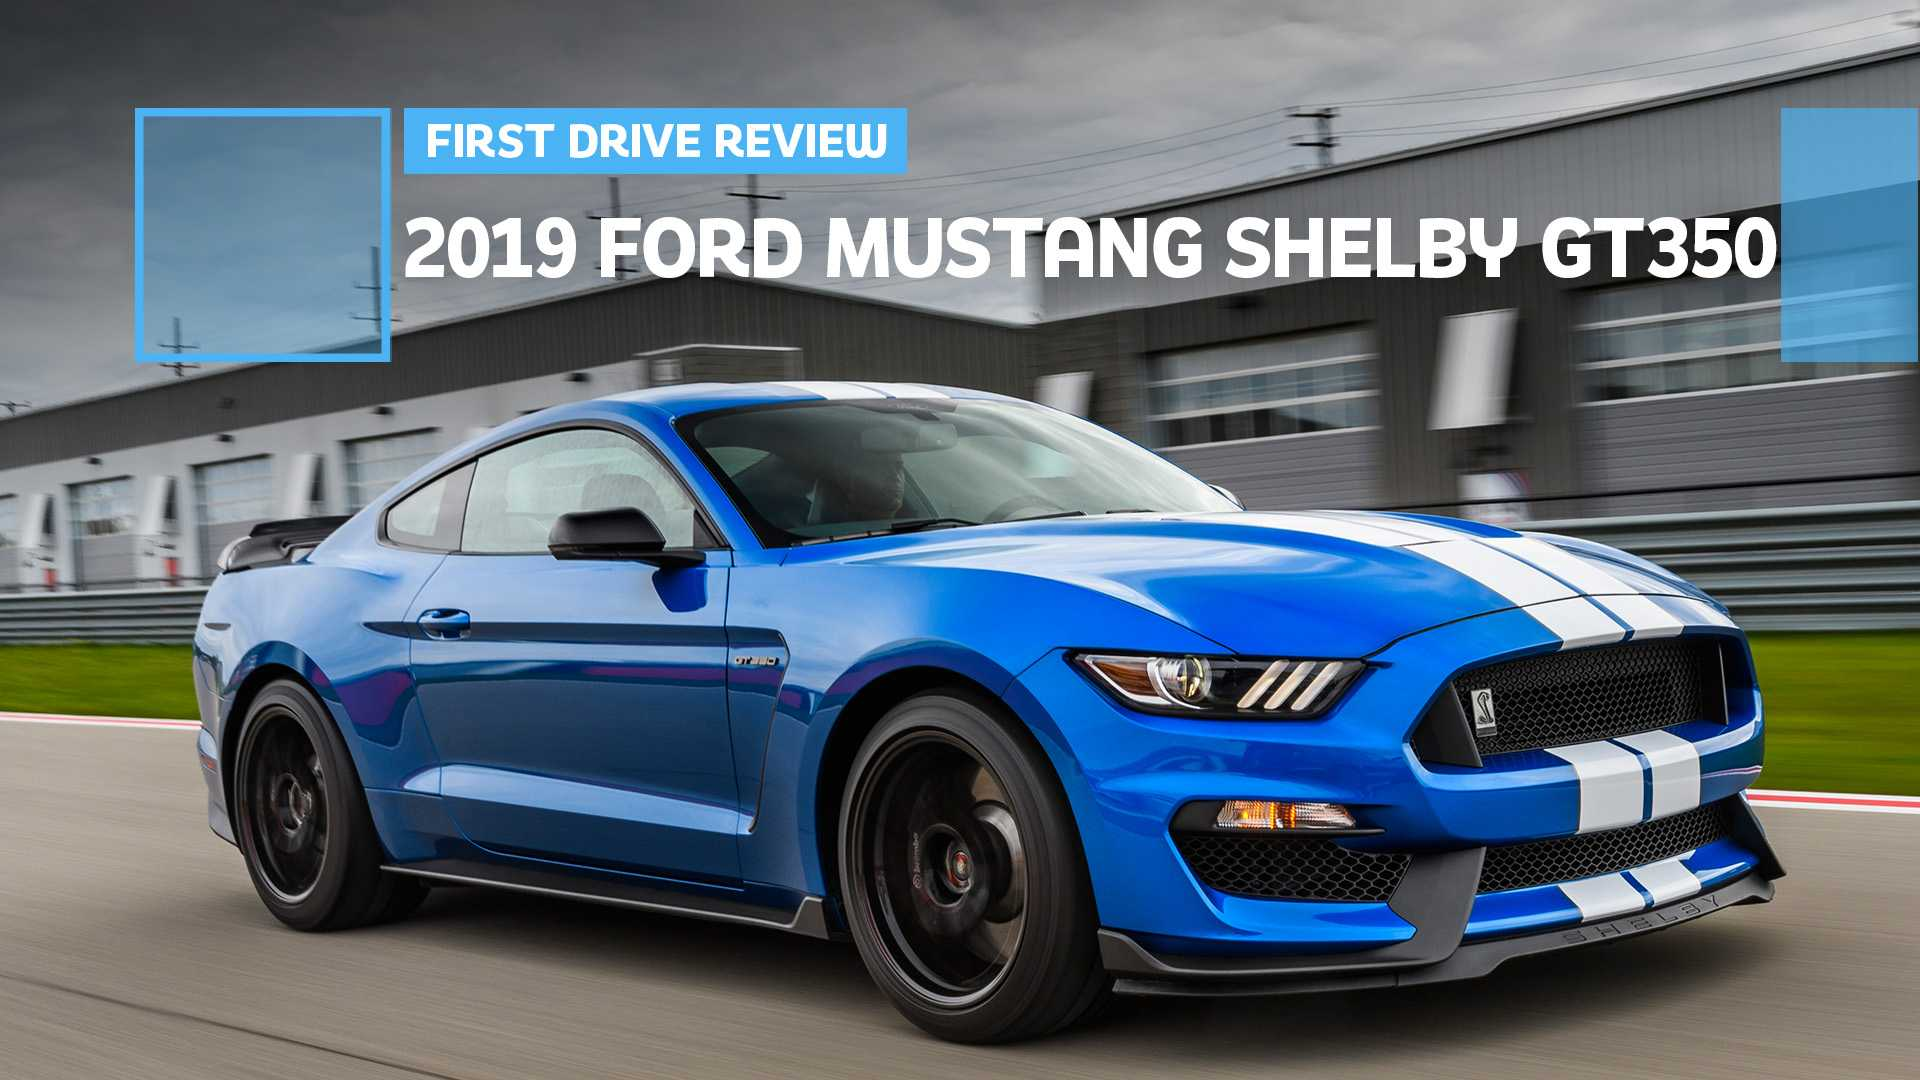 22 All New 2019 Ford Mustang Shelby Gt 350 Concept